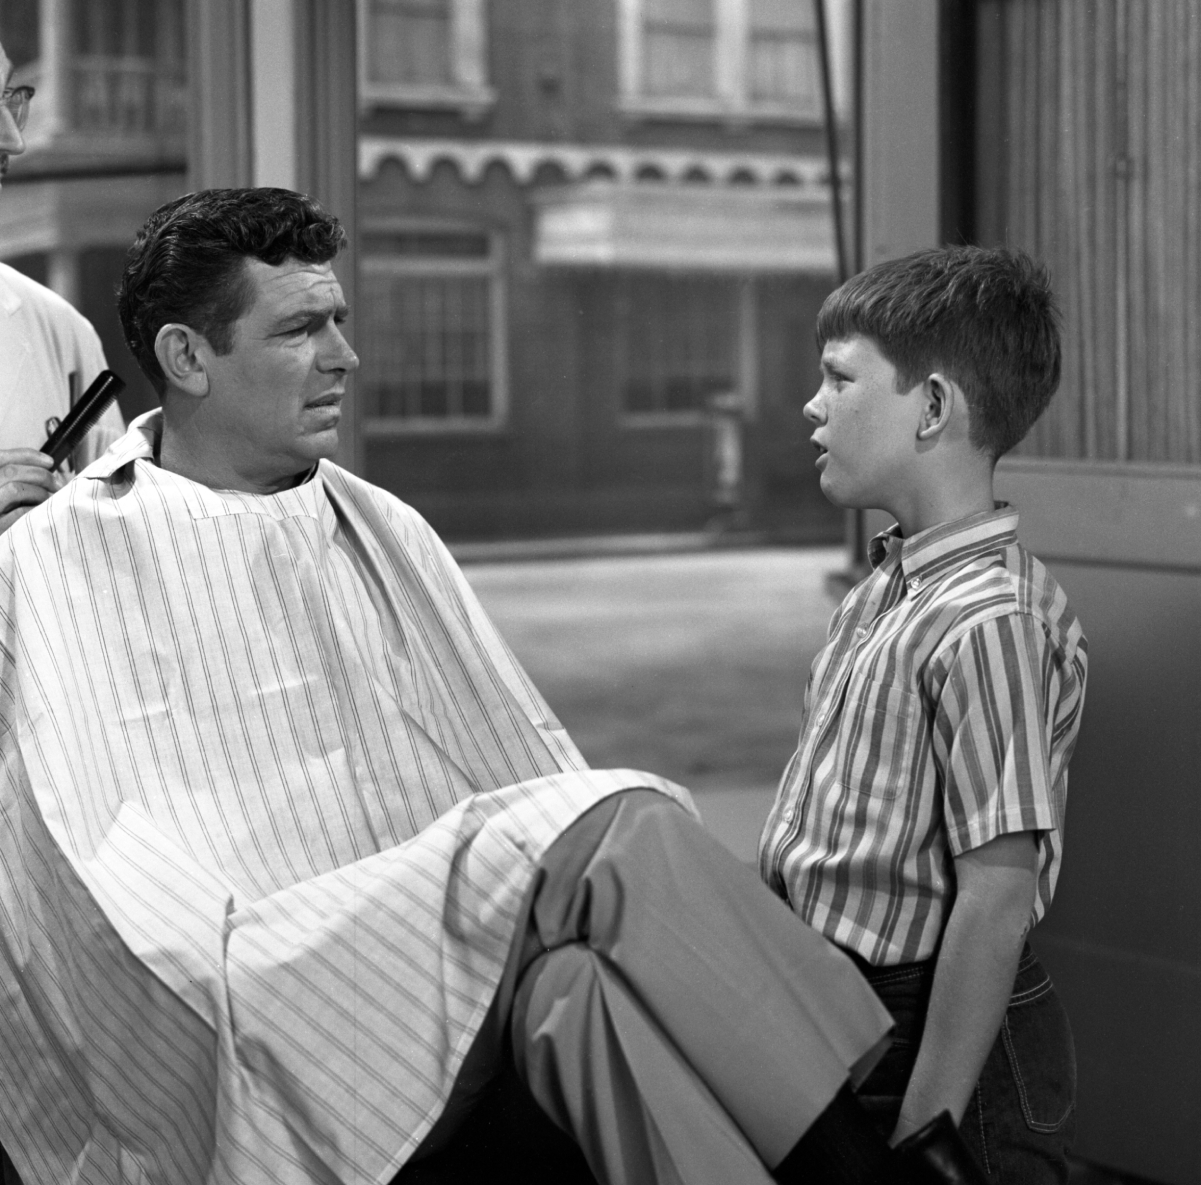 Actors Andy Griffith and Ron Howard in a scene from 'The Andy Griffith Show'